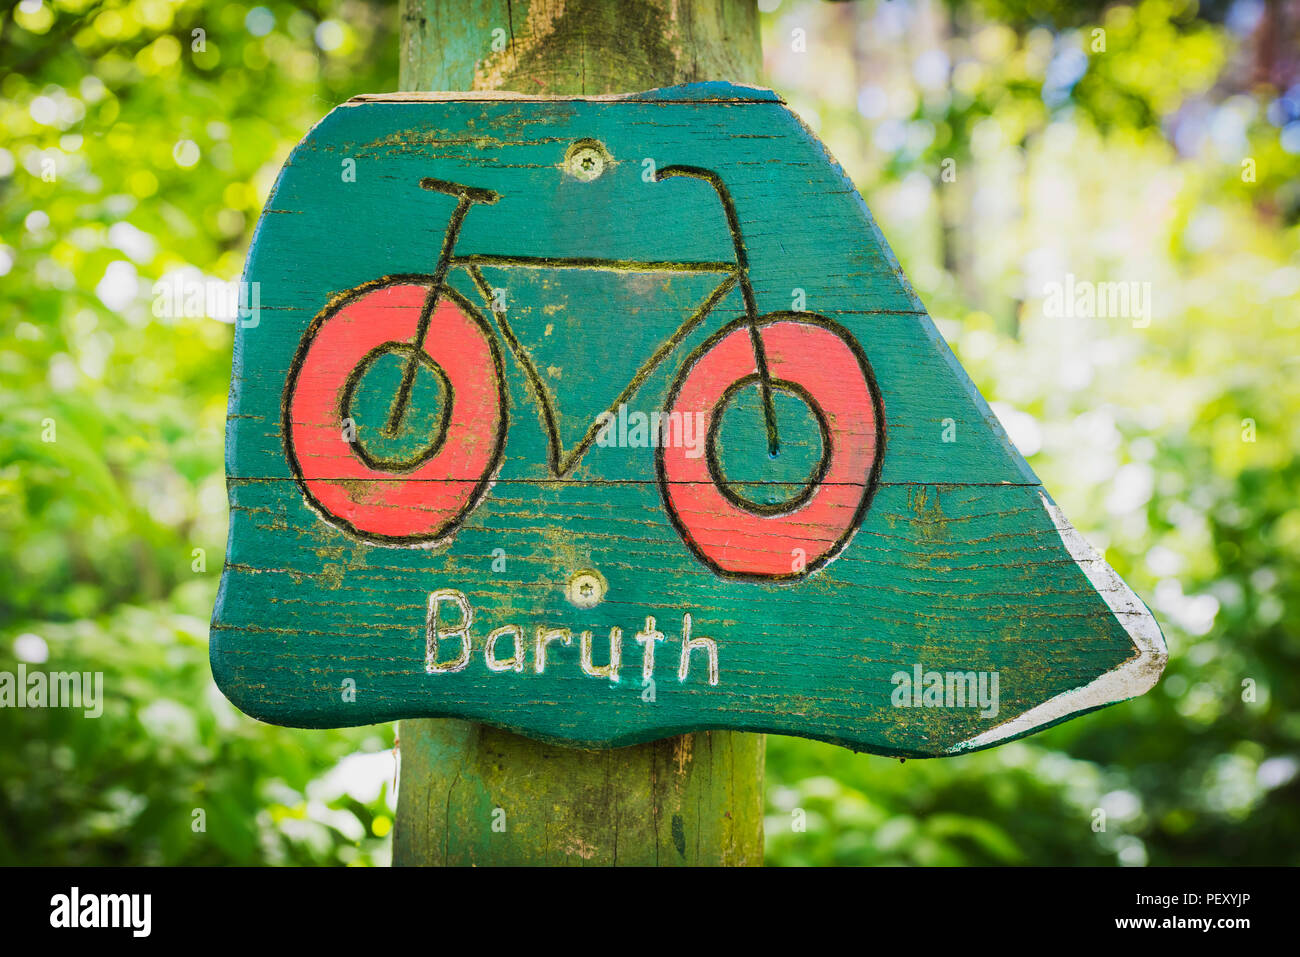 Signpost for the bicycle path to Baruth/Mark, district of Teltow-Flaeming, Brandenburg, Germany, Europe - Stock Image